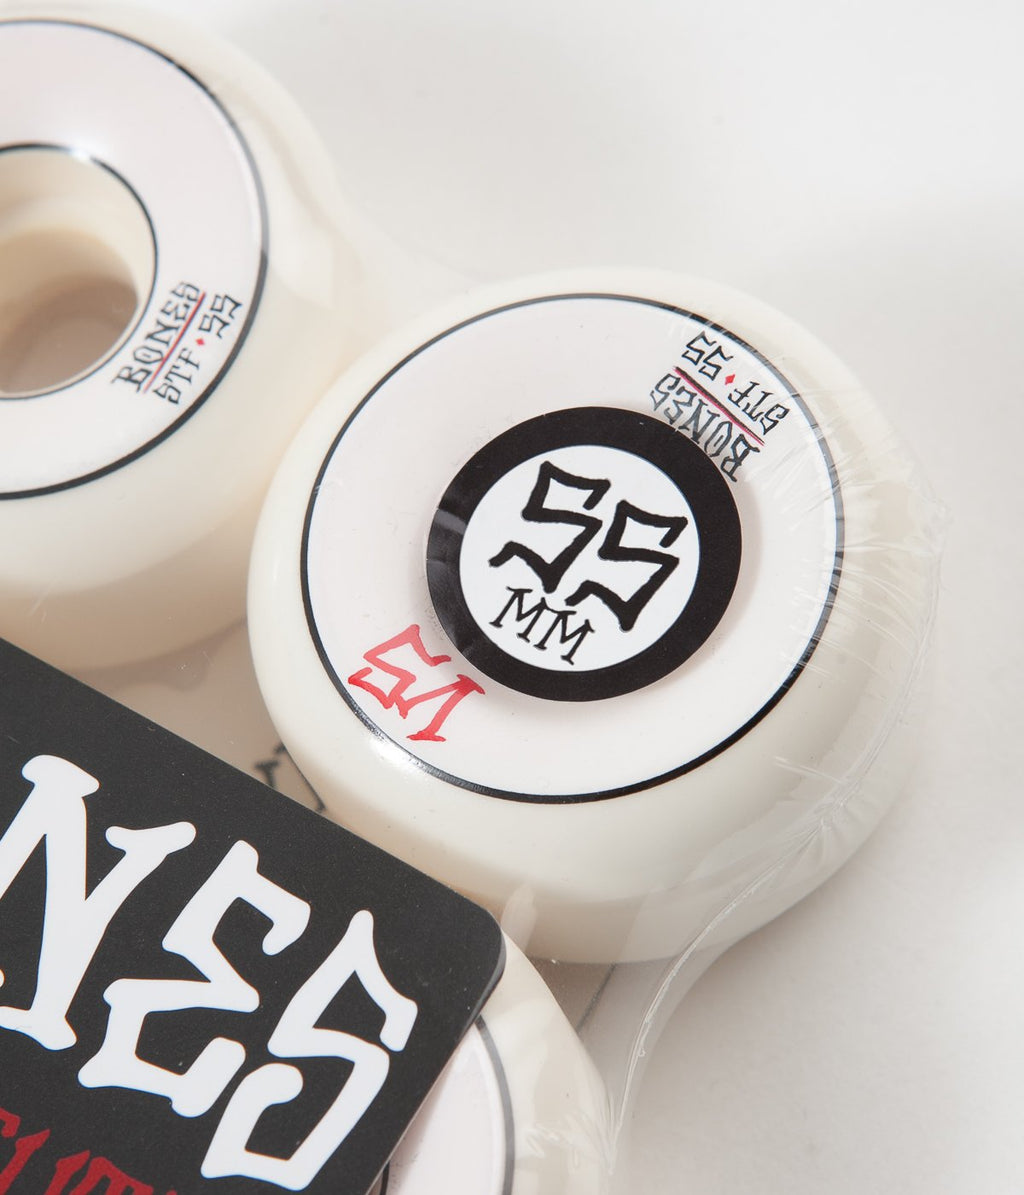 Bones STF V5 Sidecuts Skate Wheels | 55mm 103A